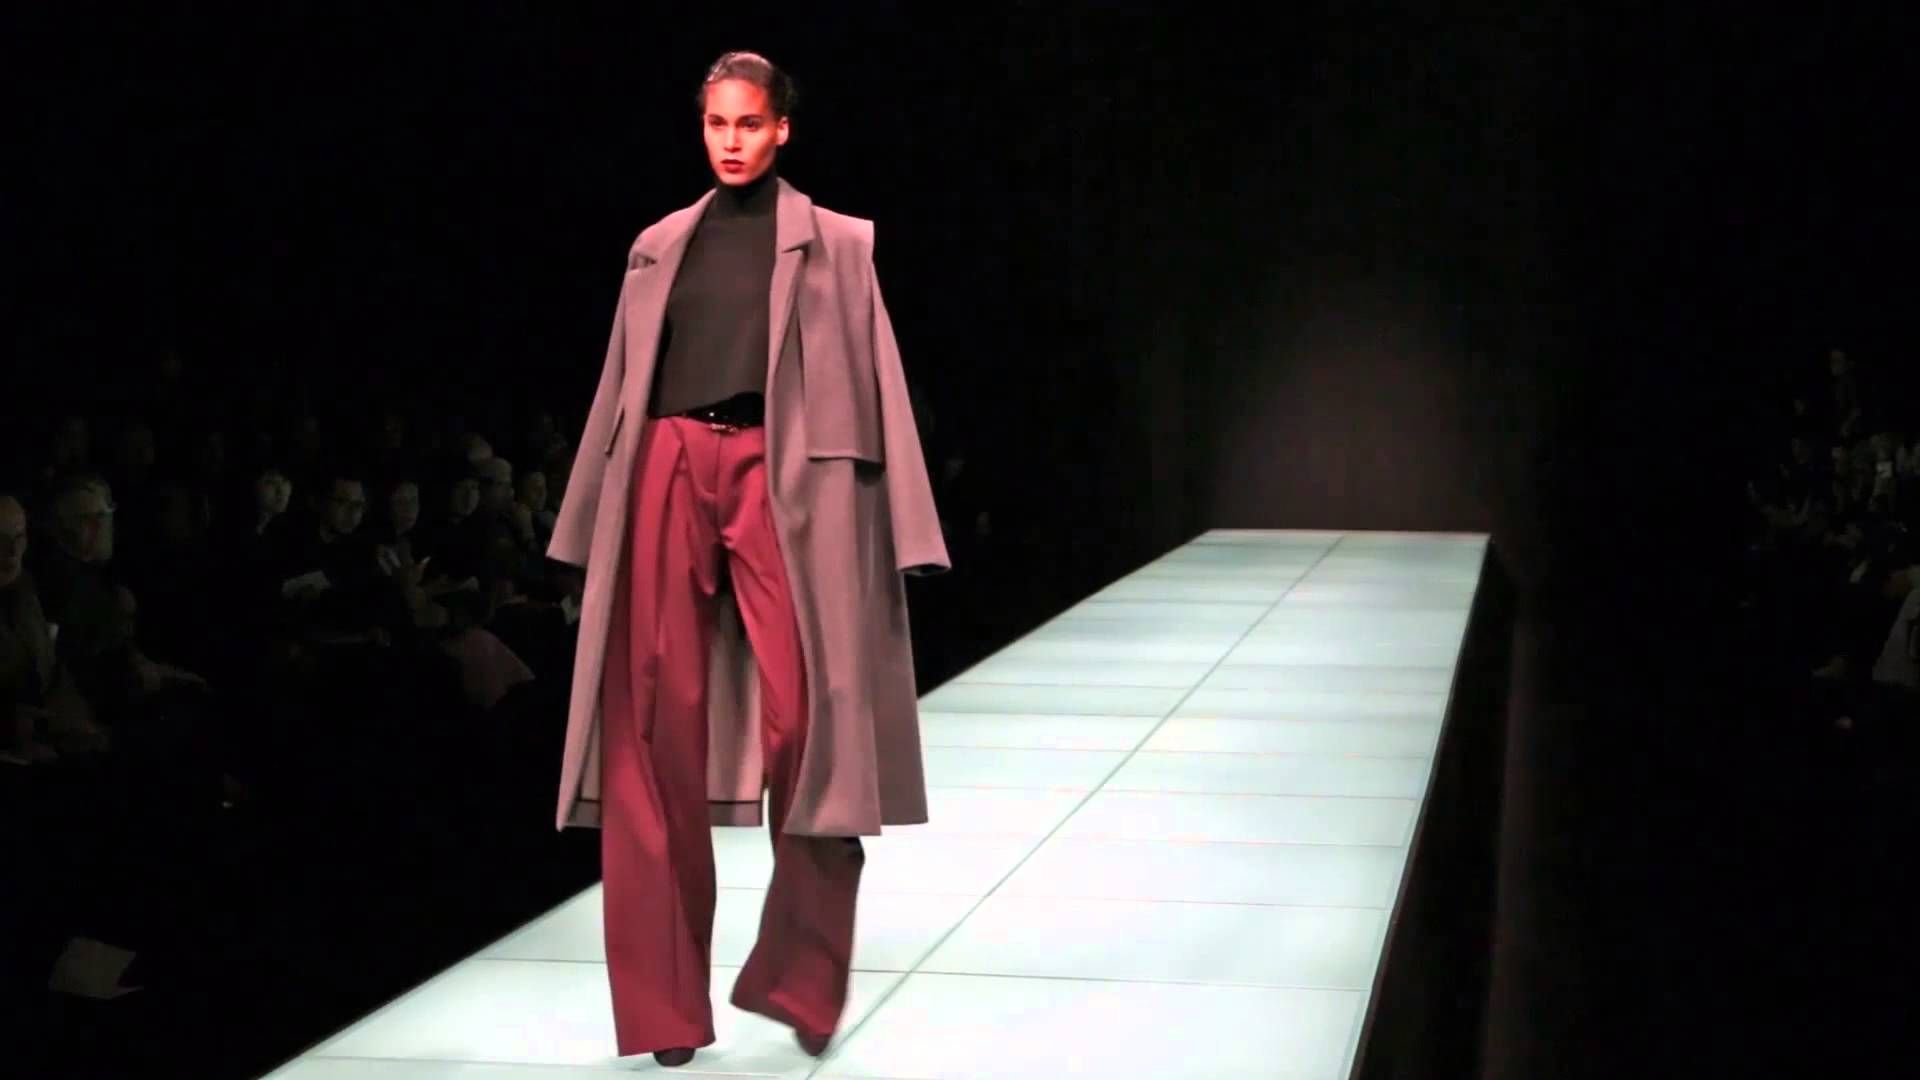 Anteprima fashion show women's collection Fall Winter 2014/15